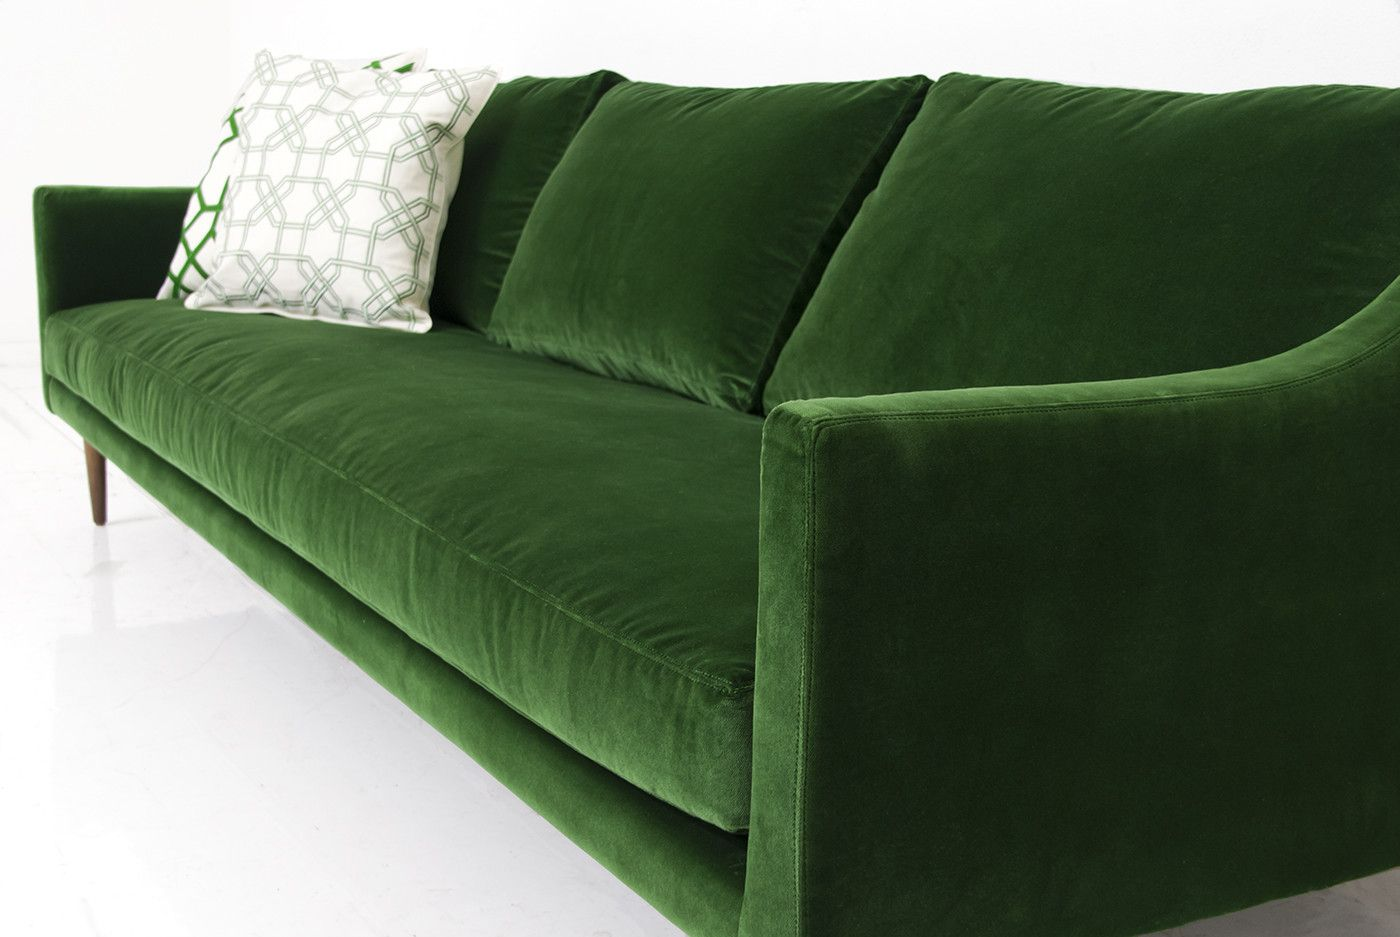 sofa bed green velvet italian leather wood frame naples in emerald new house ideas